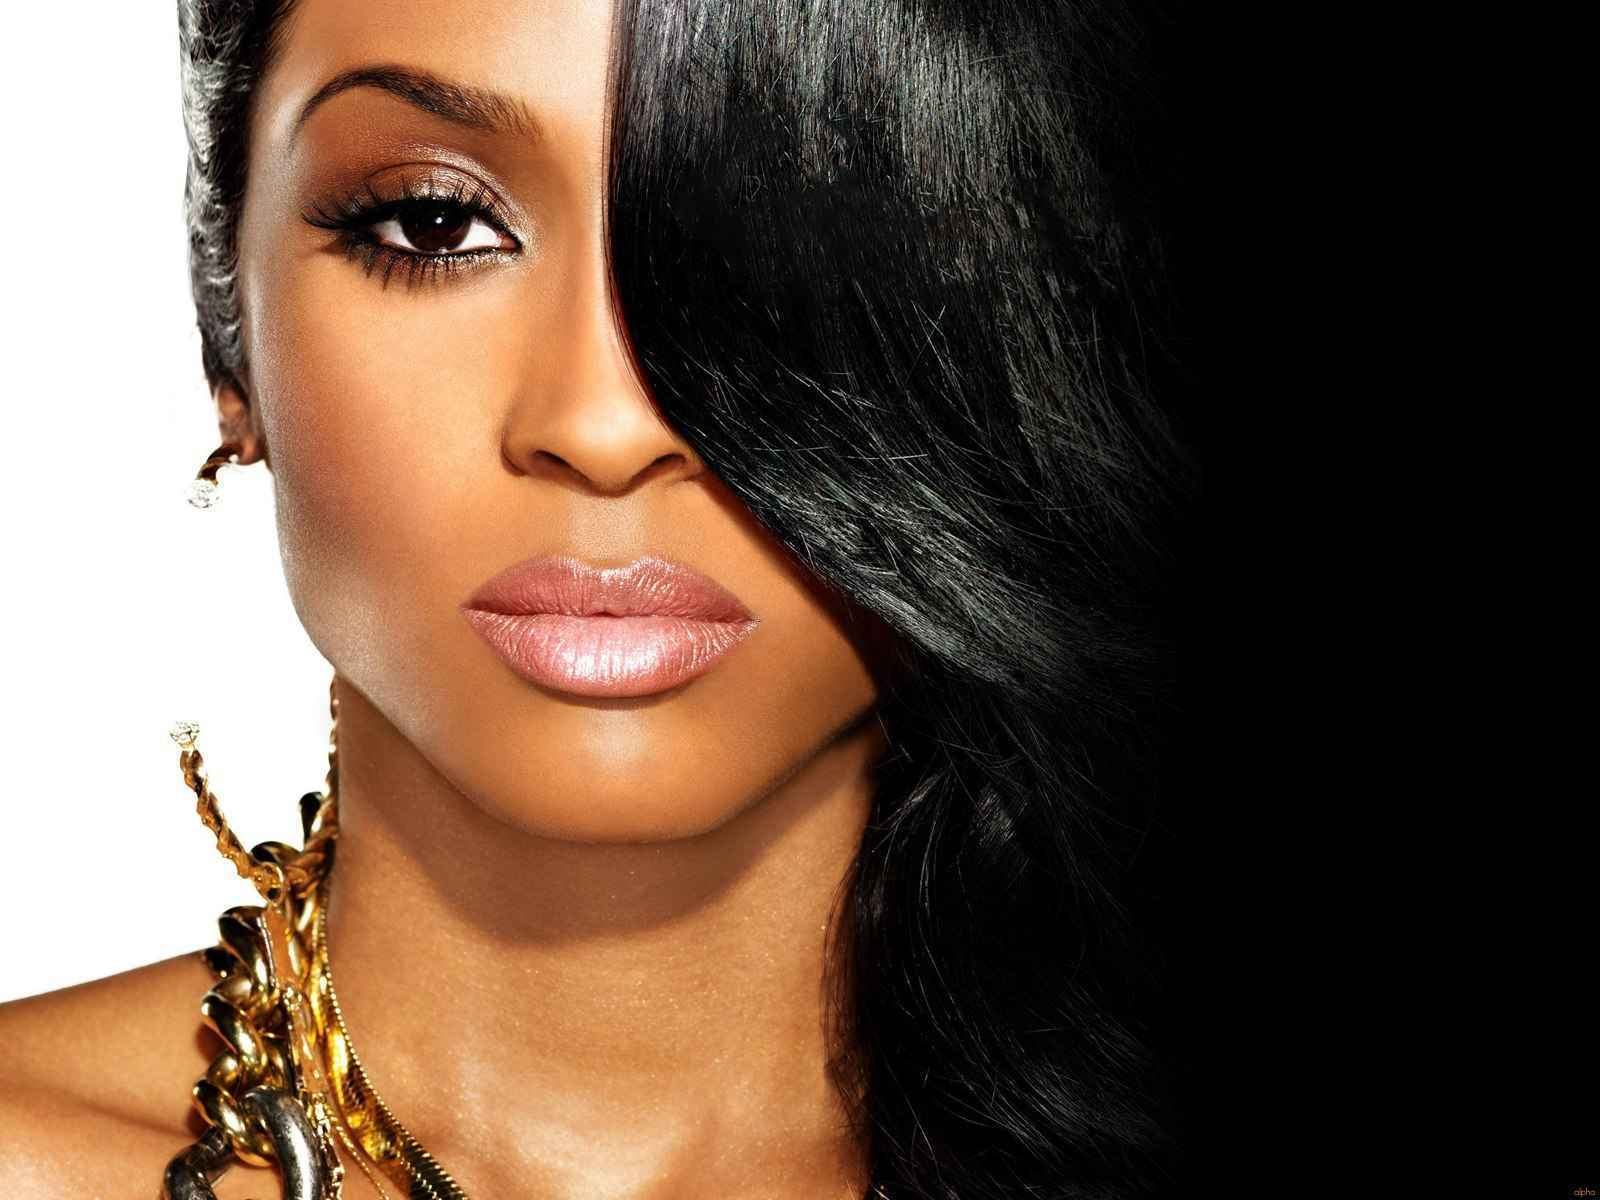 Stop me if you've heard this before, but Ciara isn't the hit-making artist she used to be. Though she's worked with a lot of successful producers on the ...